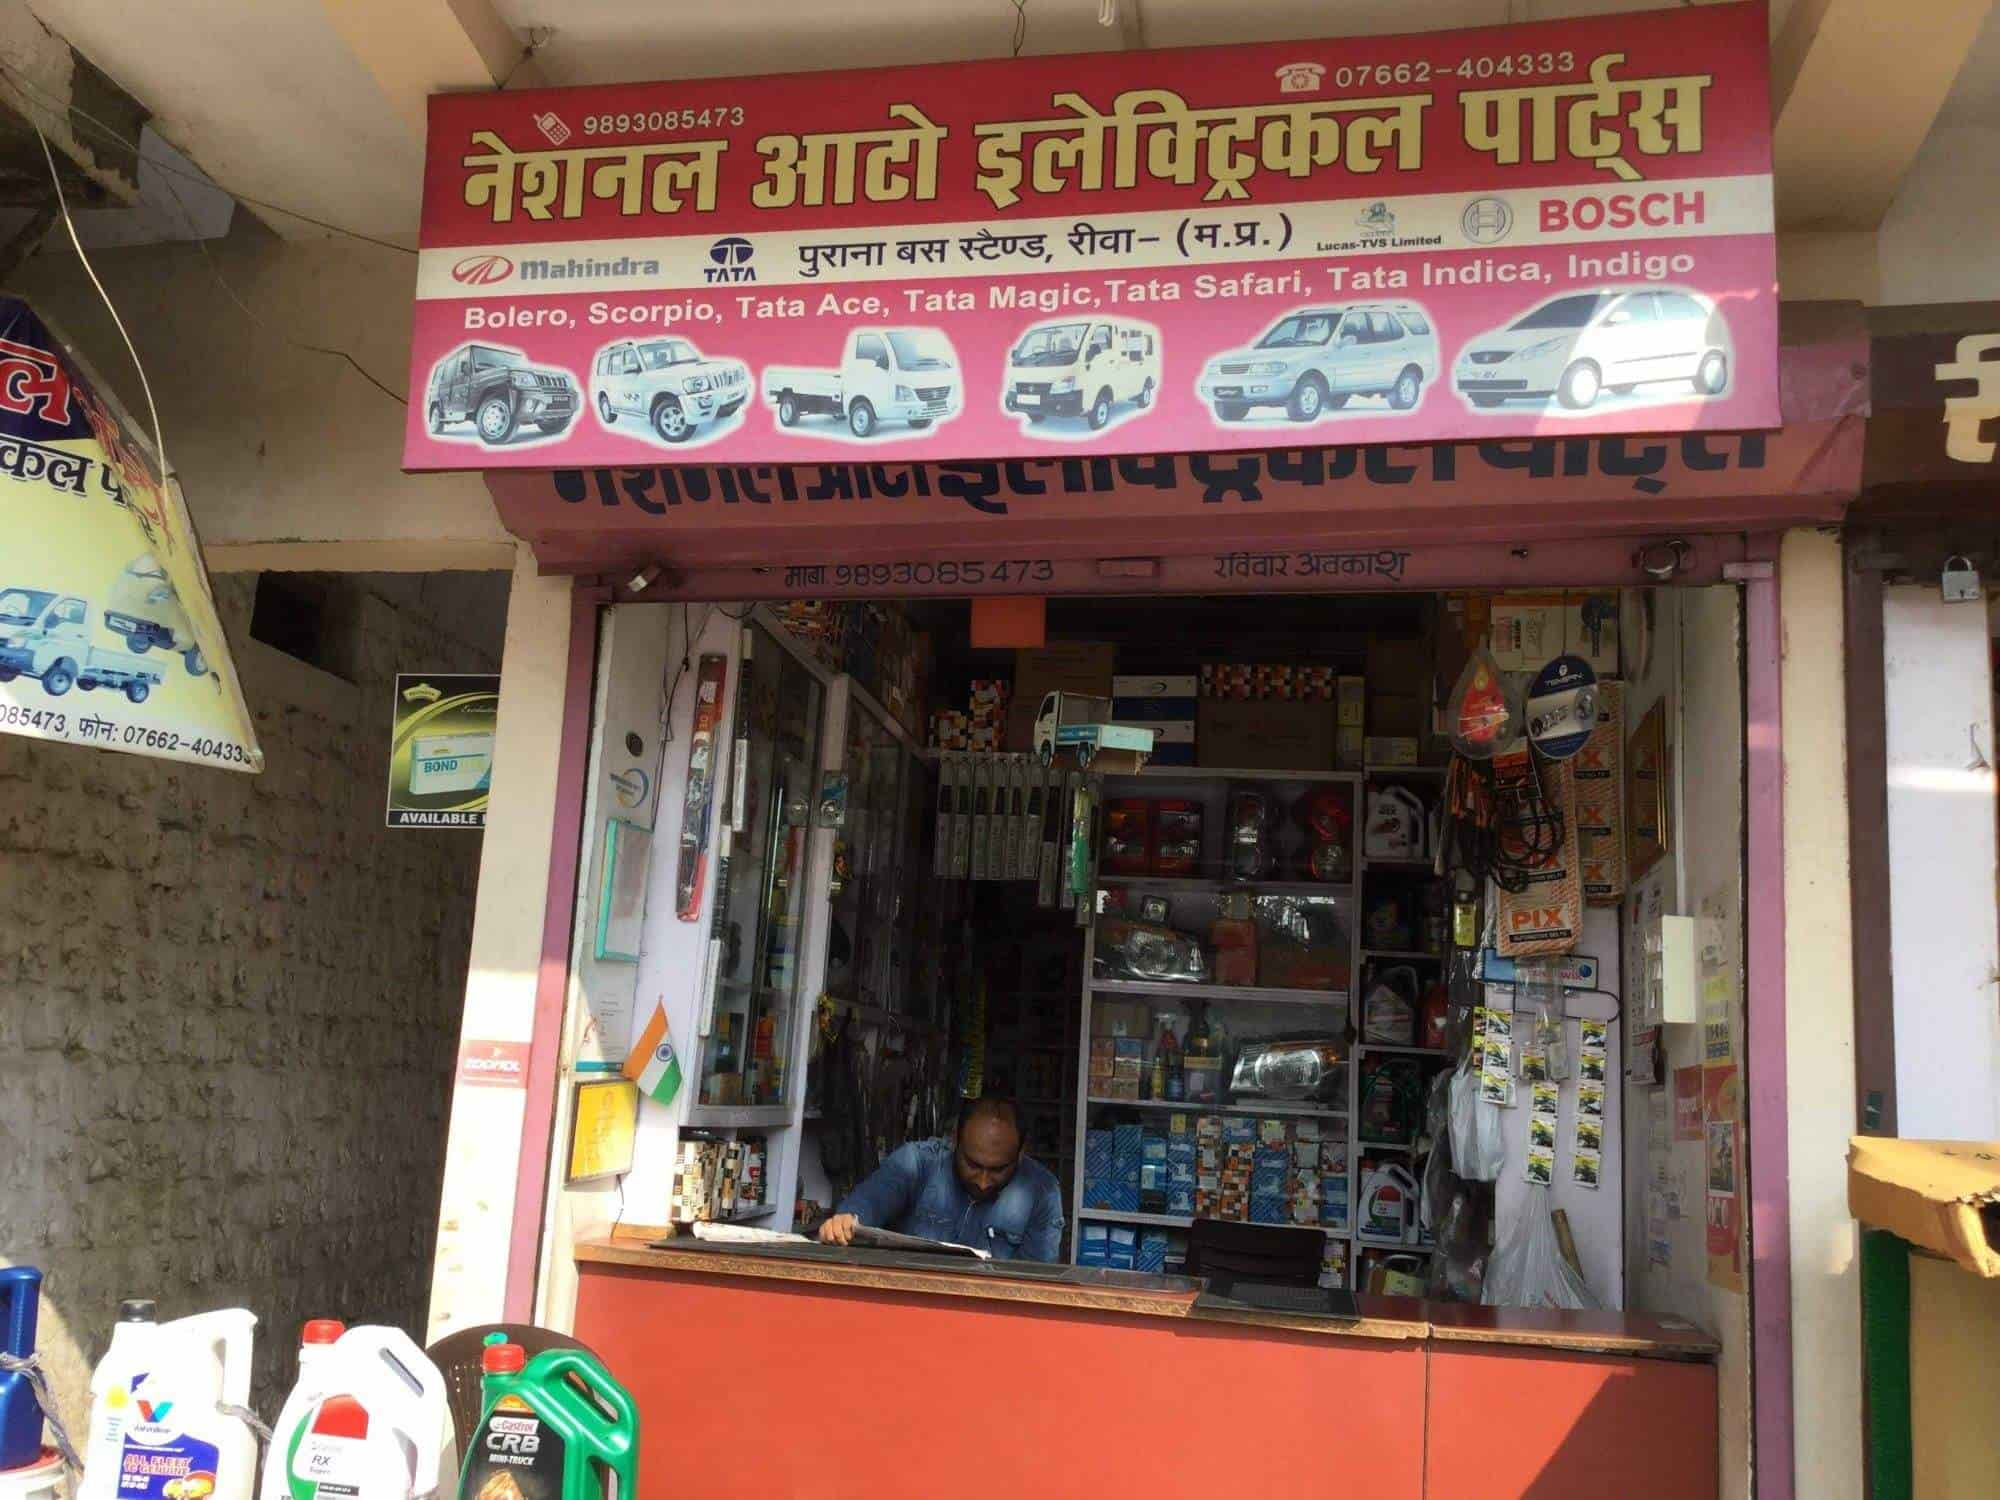 National Auto Electrical Parts, Rewa City - Auto Electrical